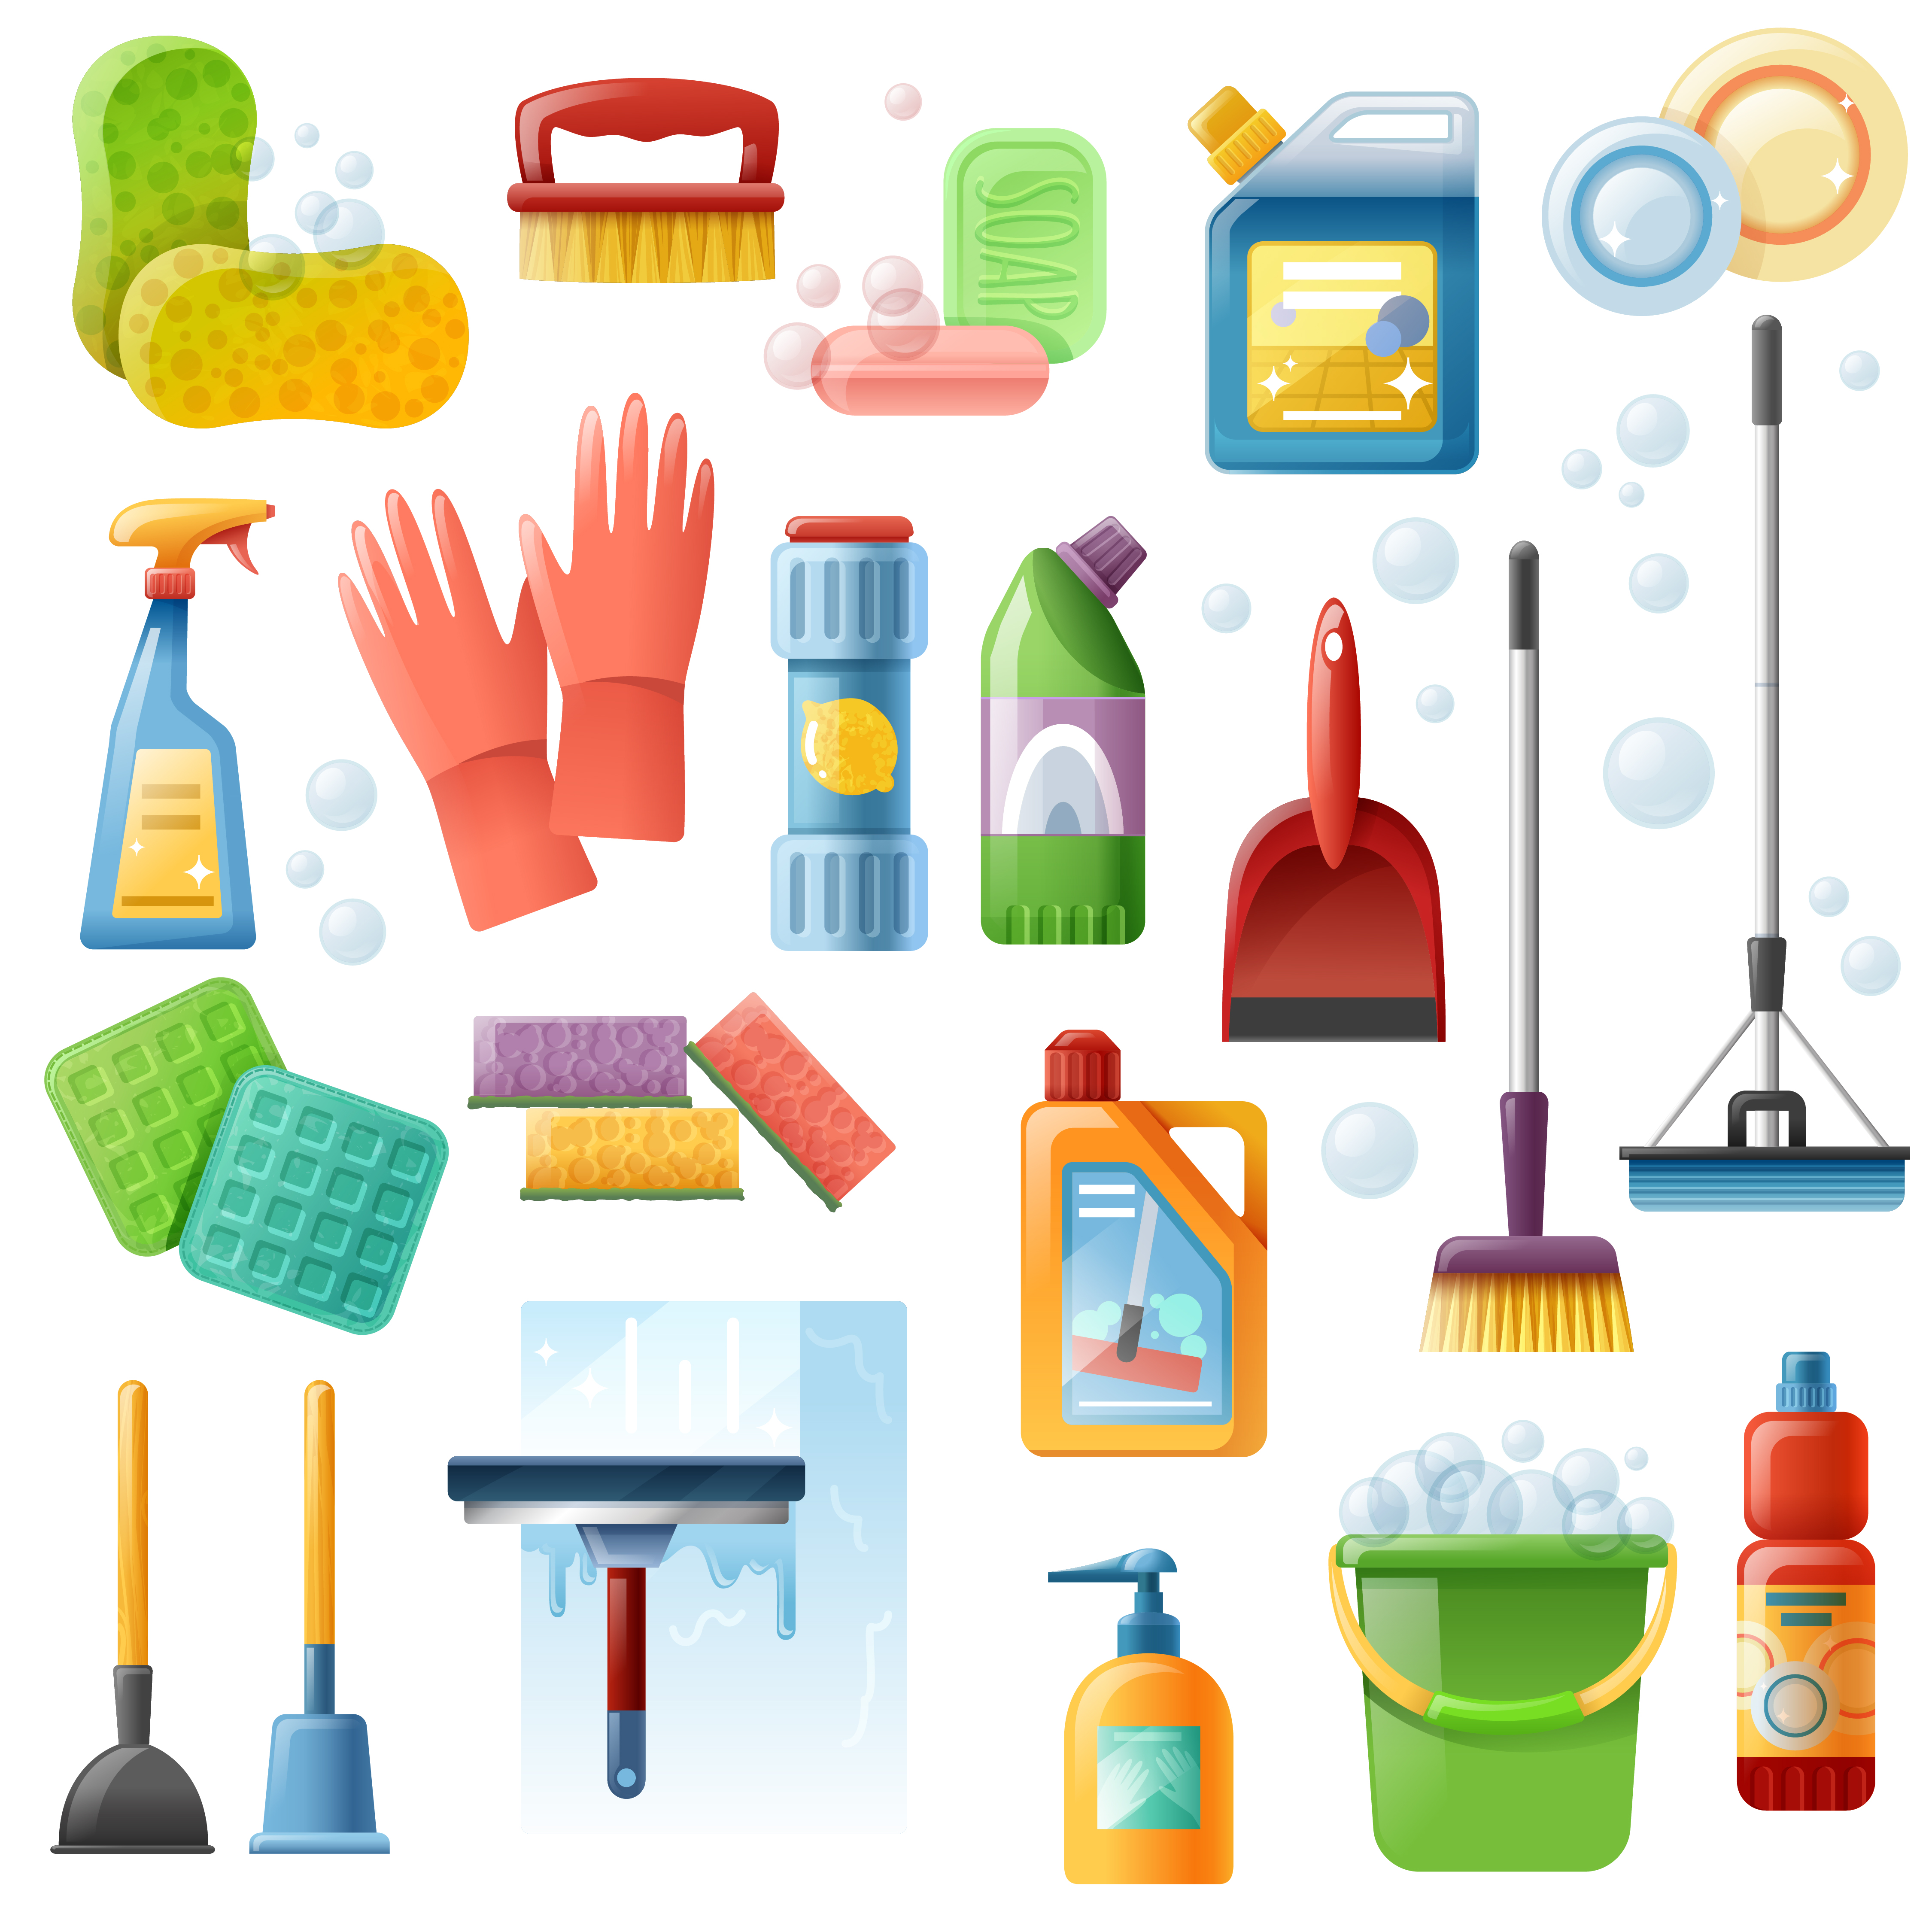 Household Supplies: Cleaning Supplies Tools Flat Icons Set